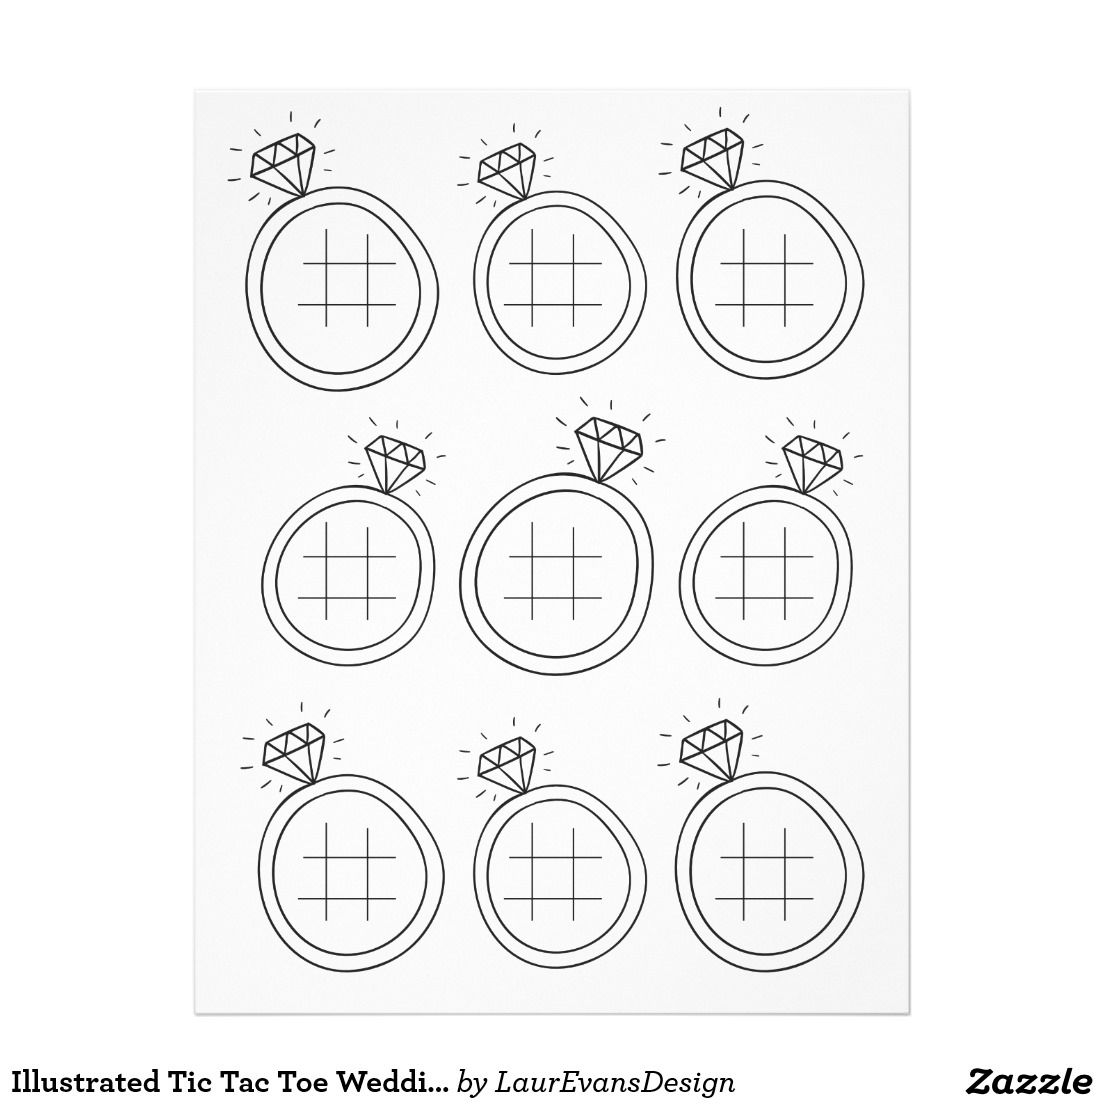 Illustrated Tic Tac Toe Wedding Activity Page  Wedding Bridal